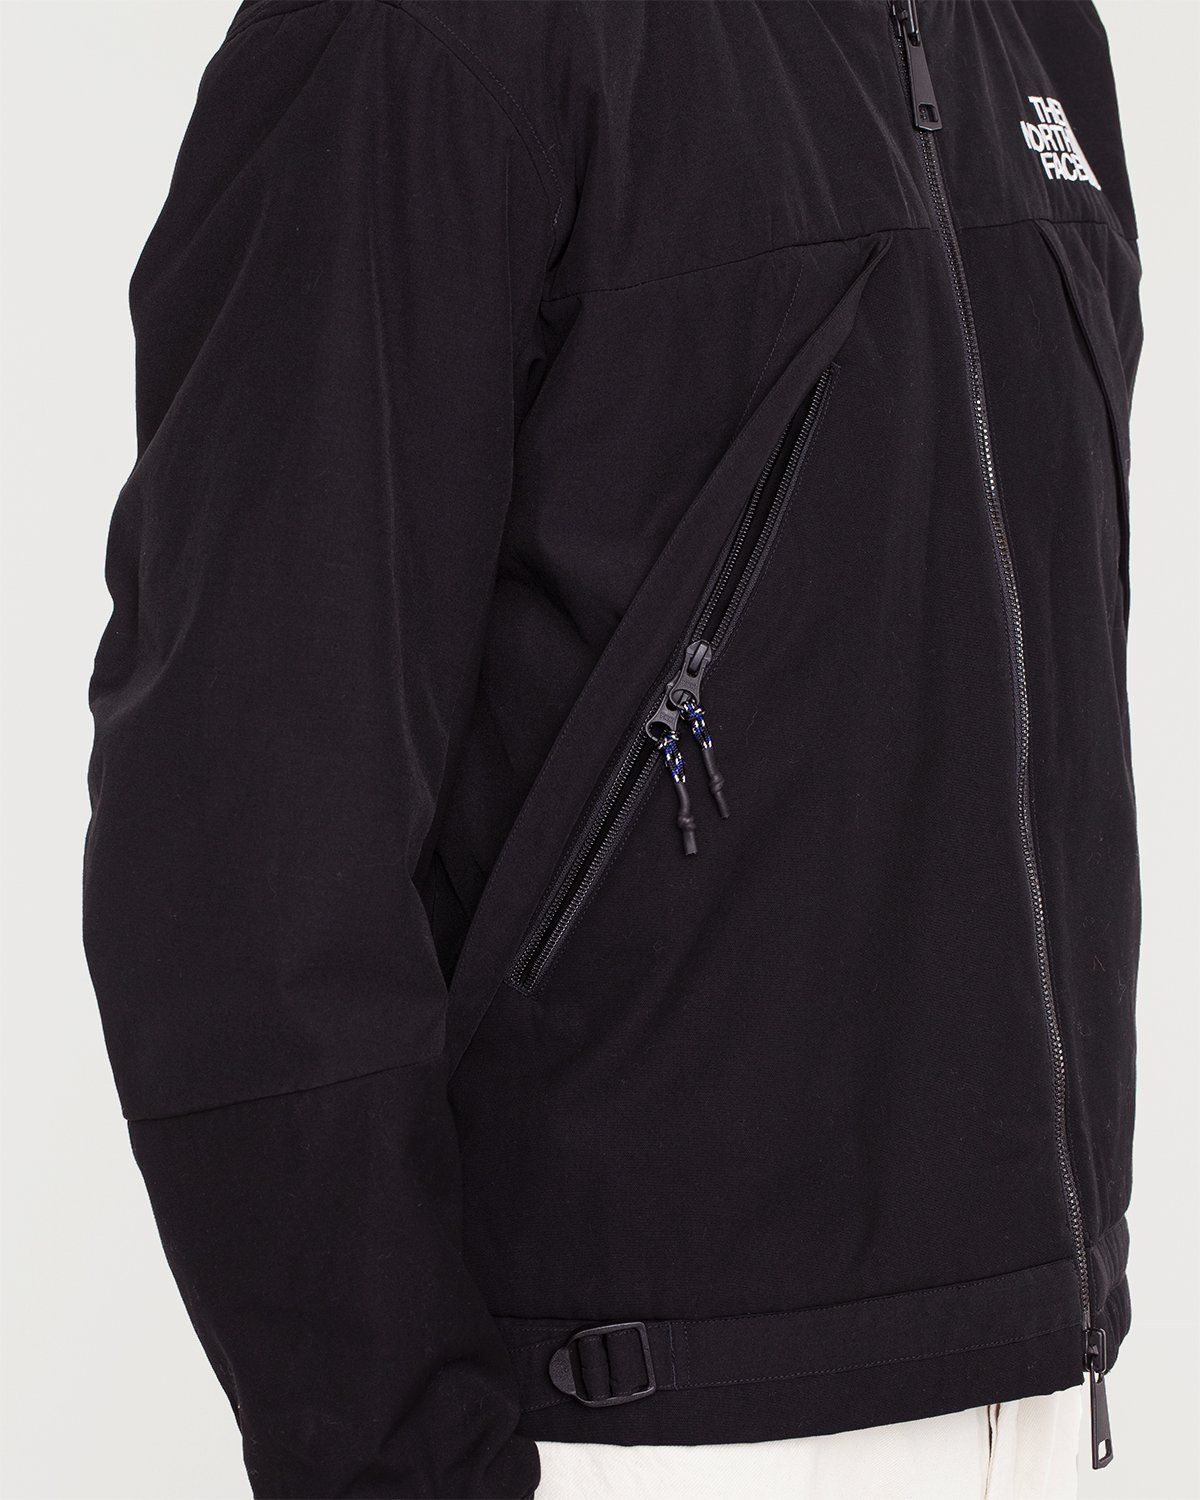 The North Face Black Series - Spectra® Blouson Jacket Black  - Image 2